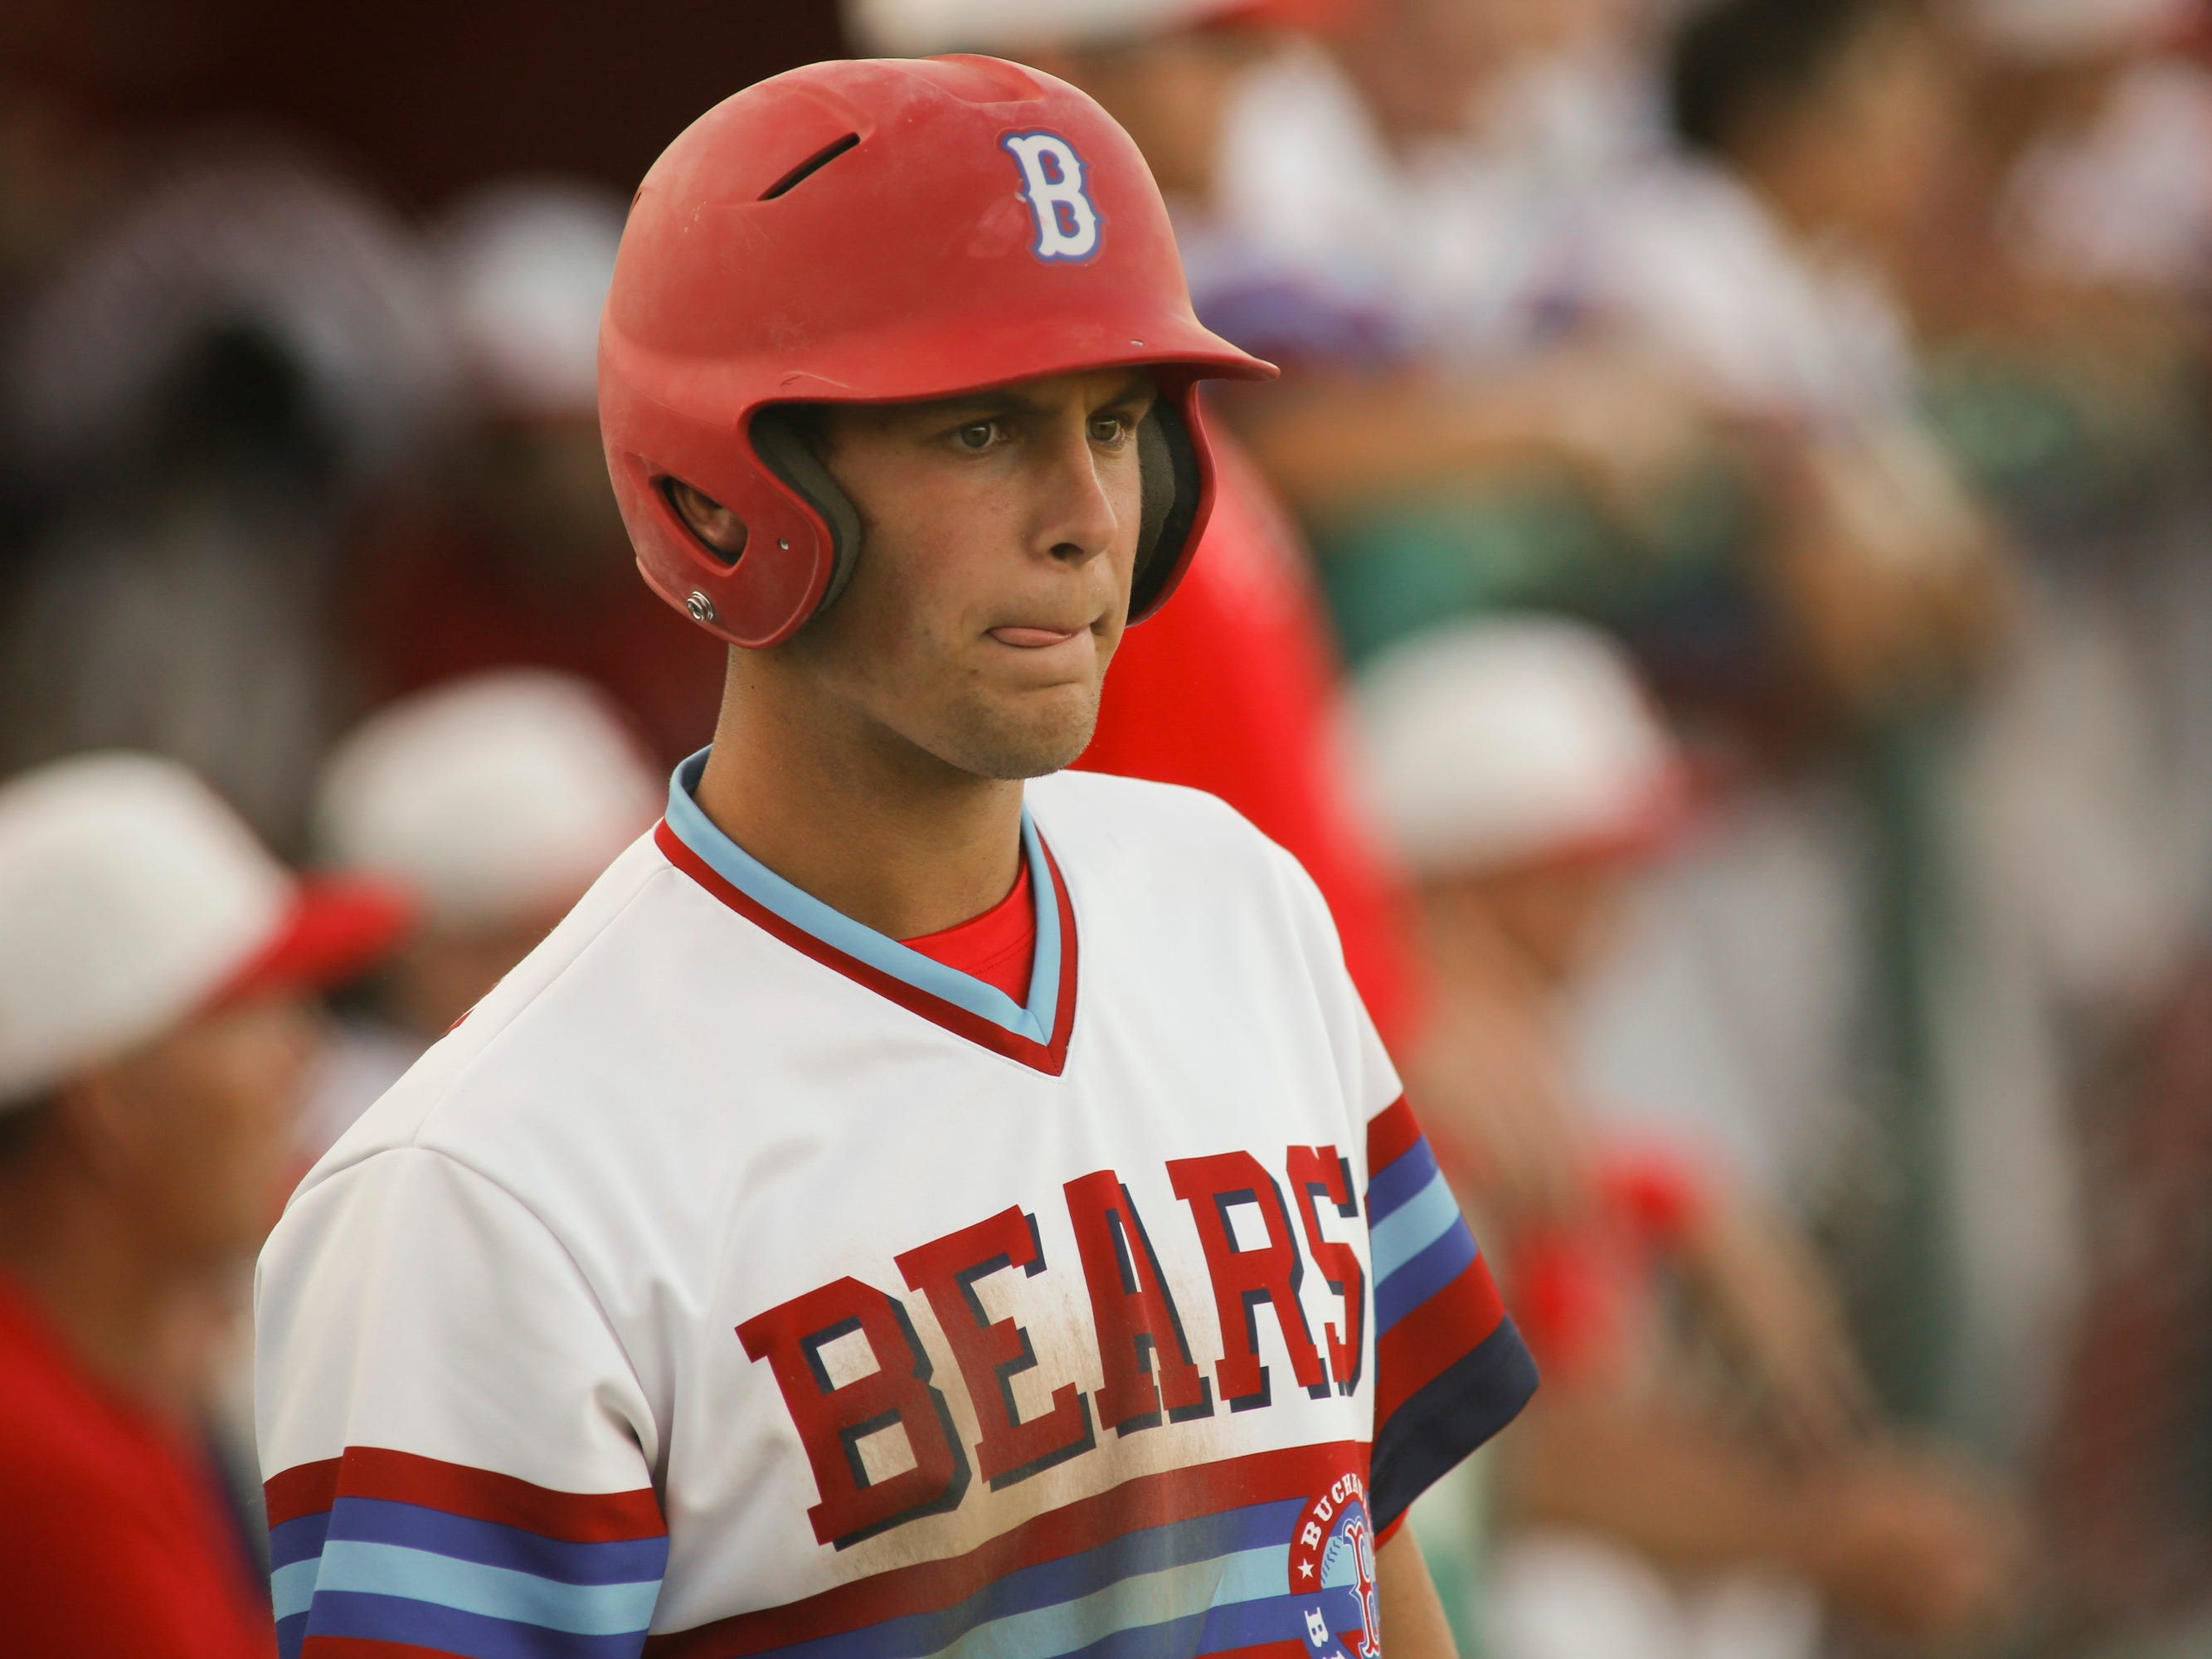 Former Tulare Western student Ross Dodds leads Buchanan for today's Central Section Division I championship game at Recreation Park.